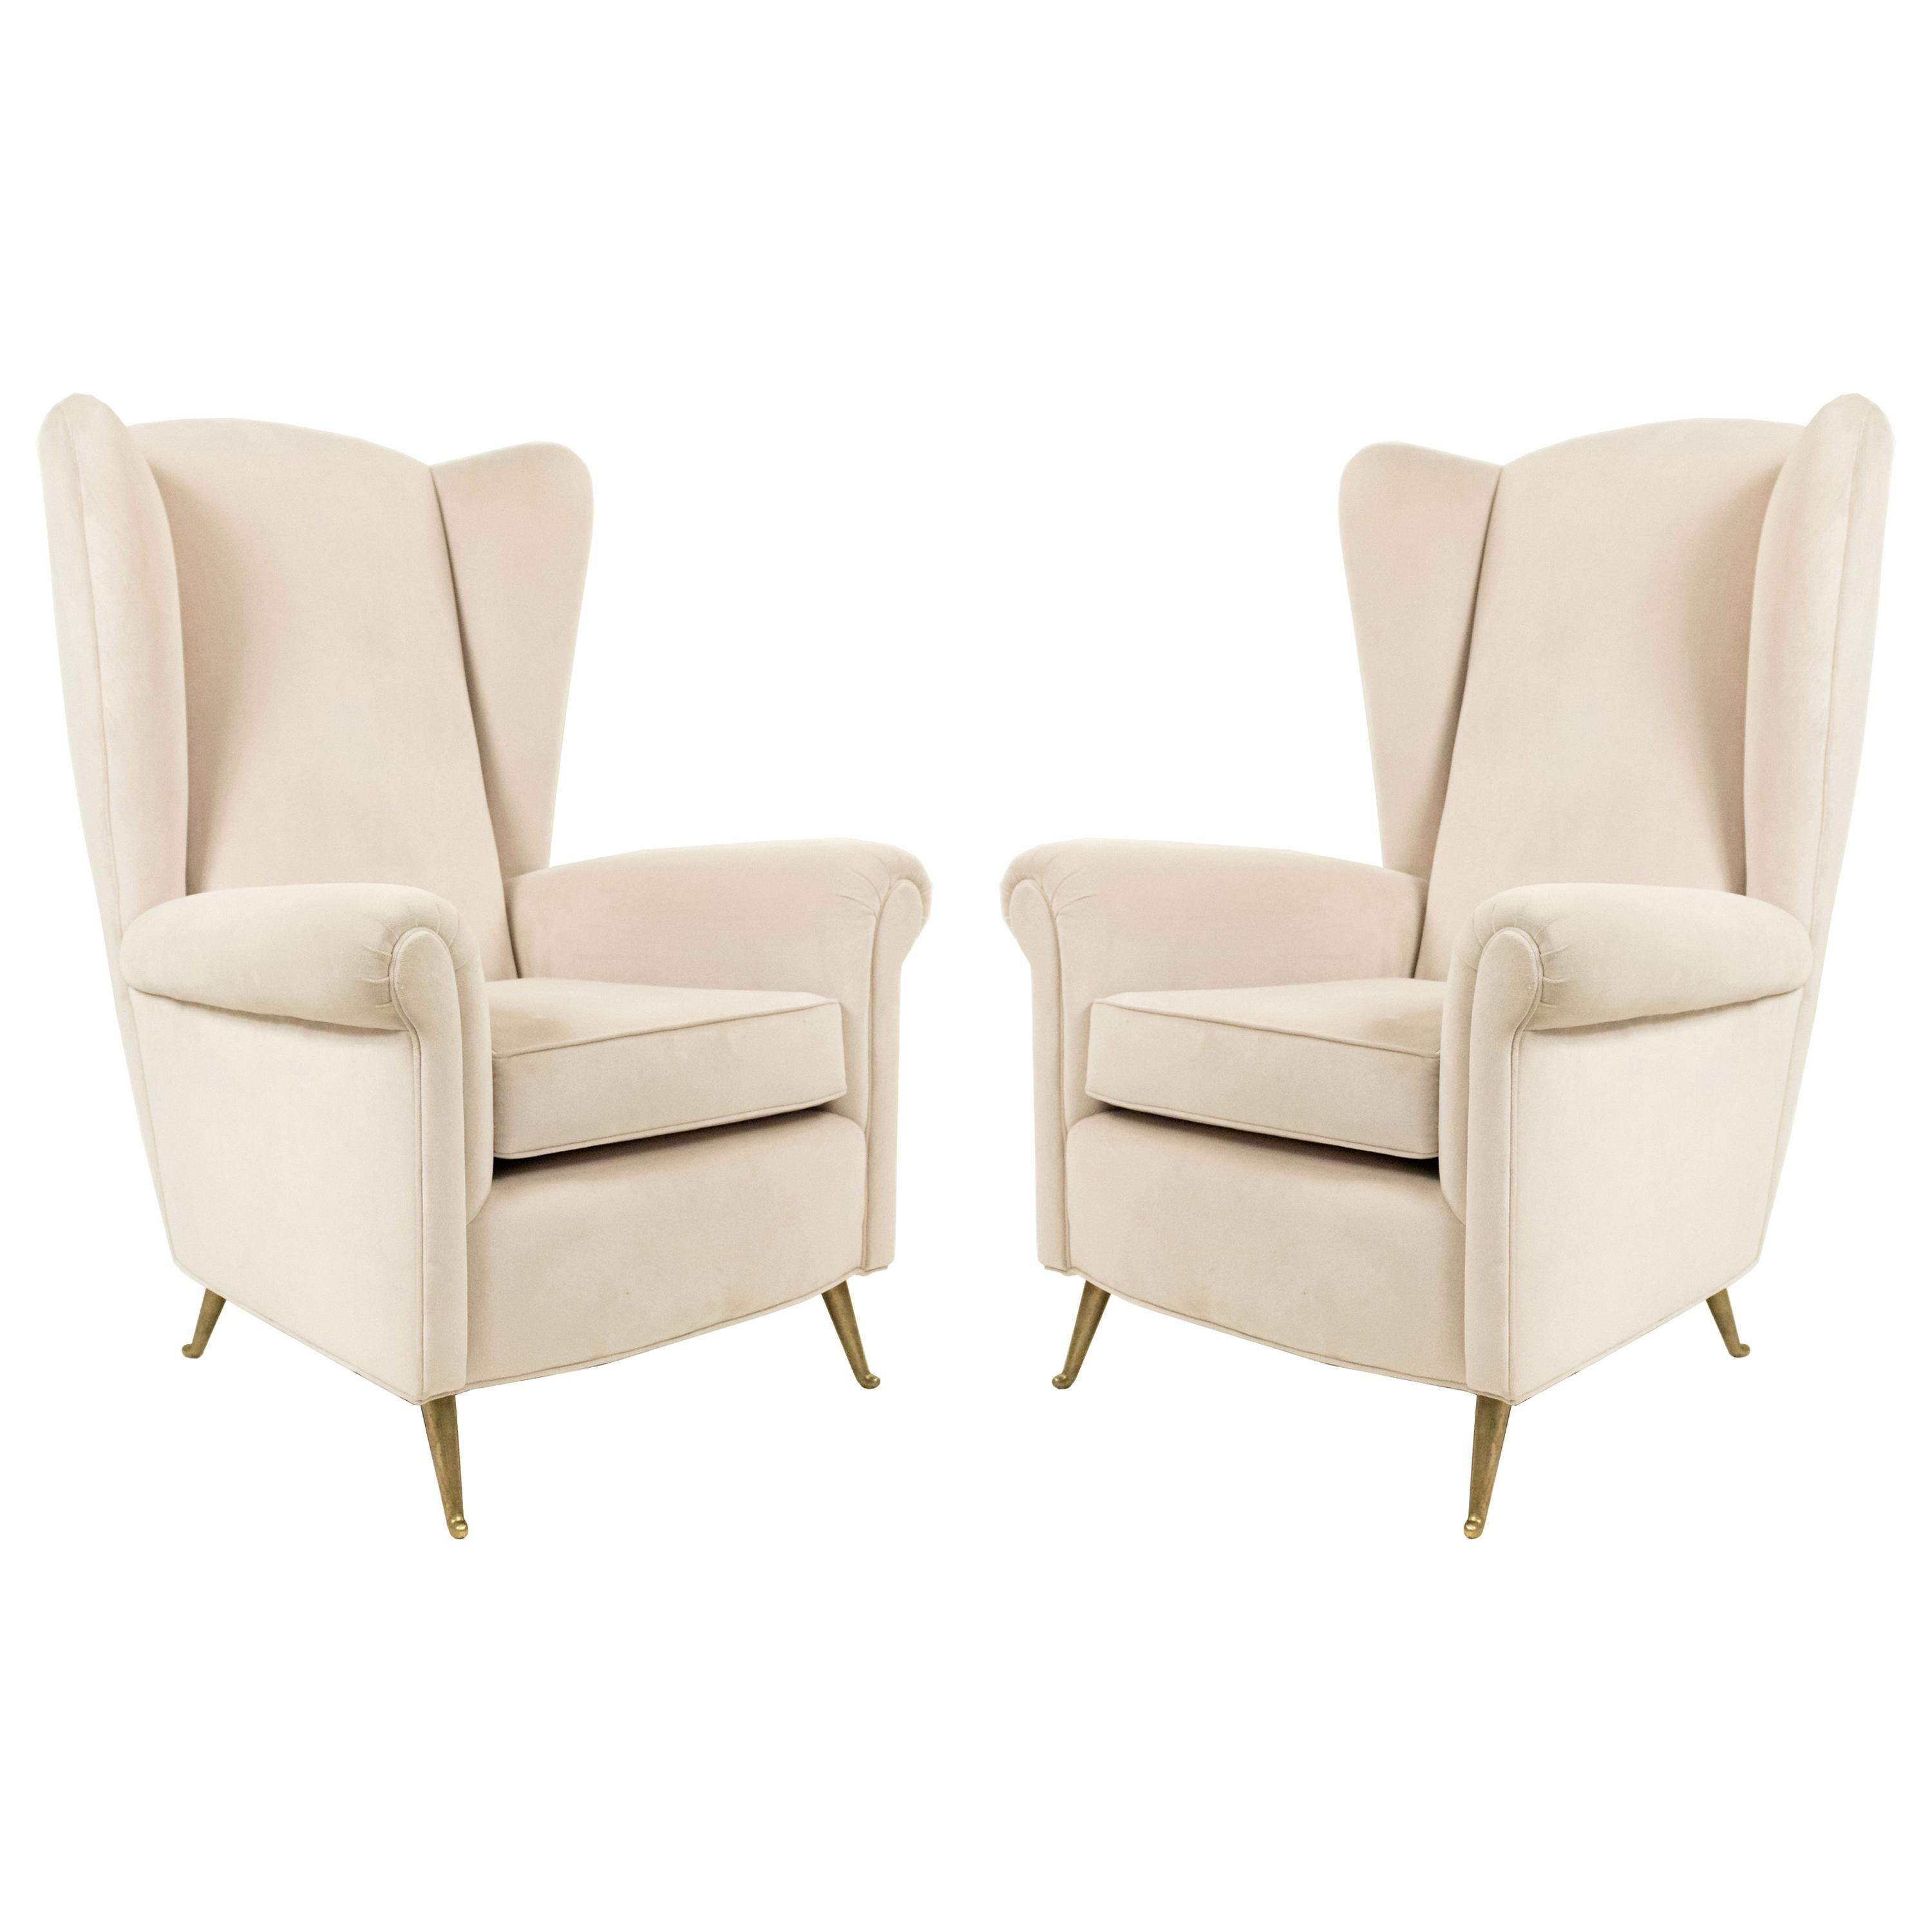 Pair of Taupe Modernist Velvet Wingback Chairs